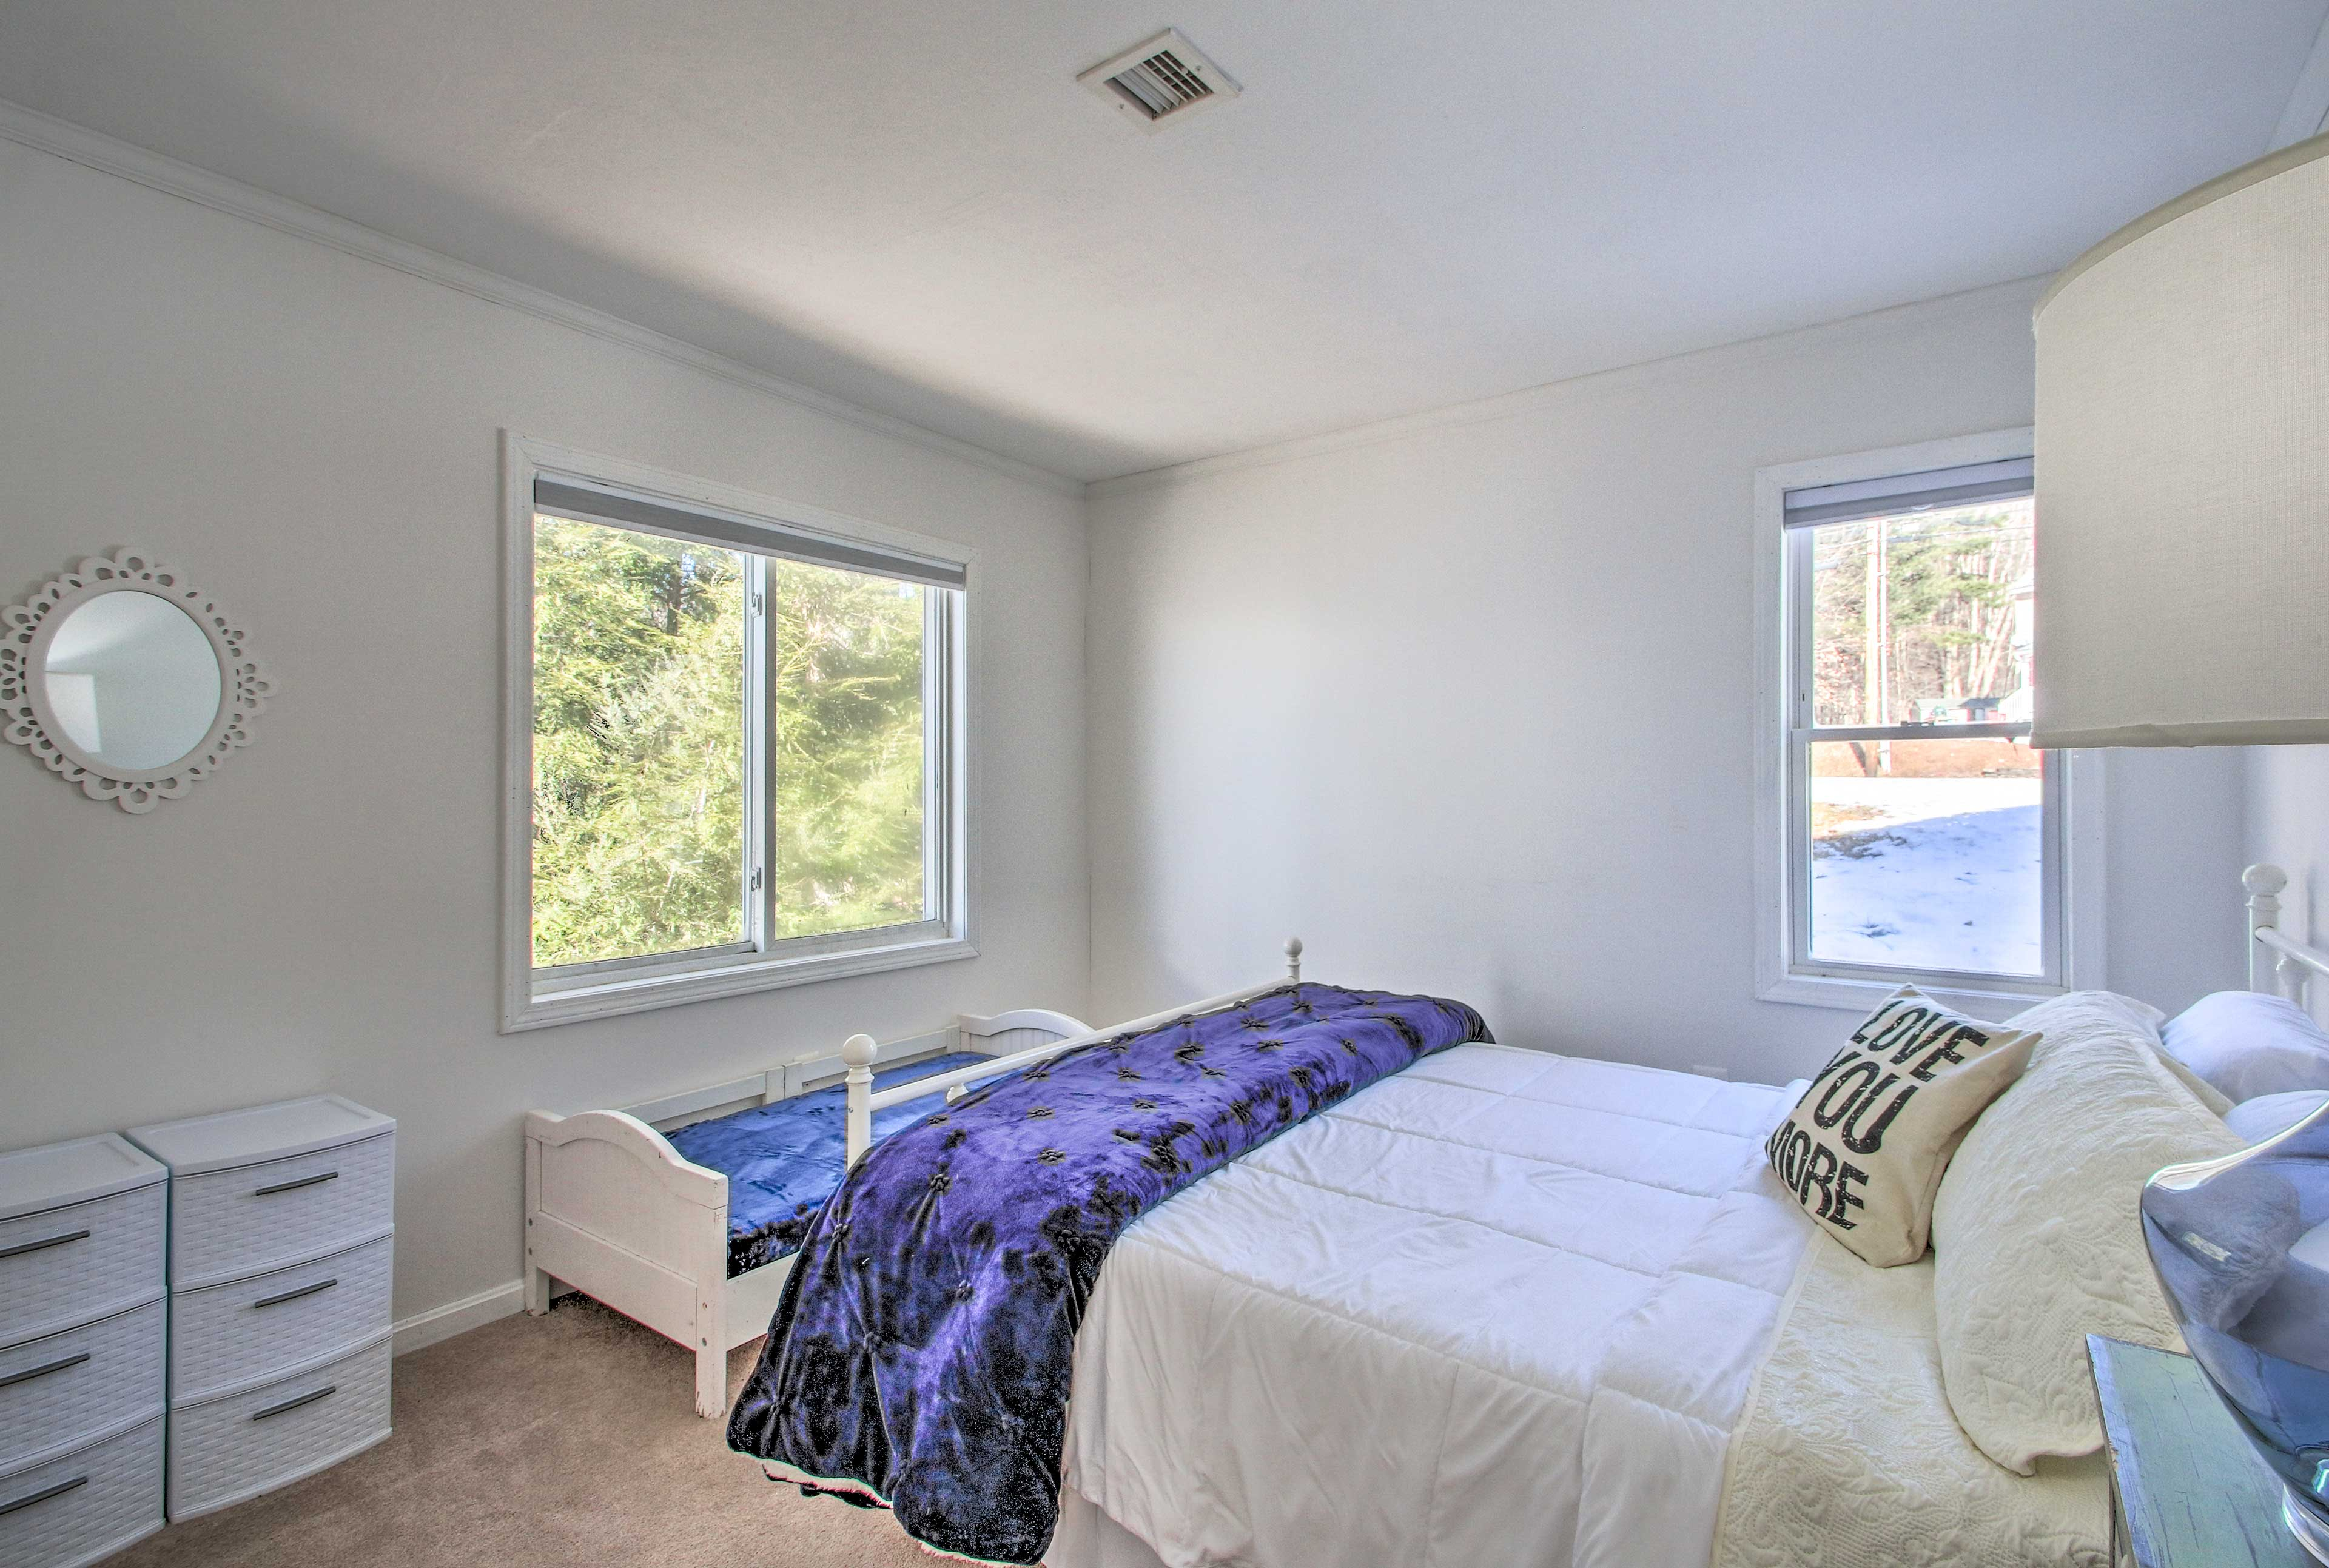 With a queen and twin bed, this room can sleep 3.